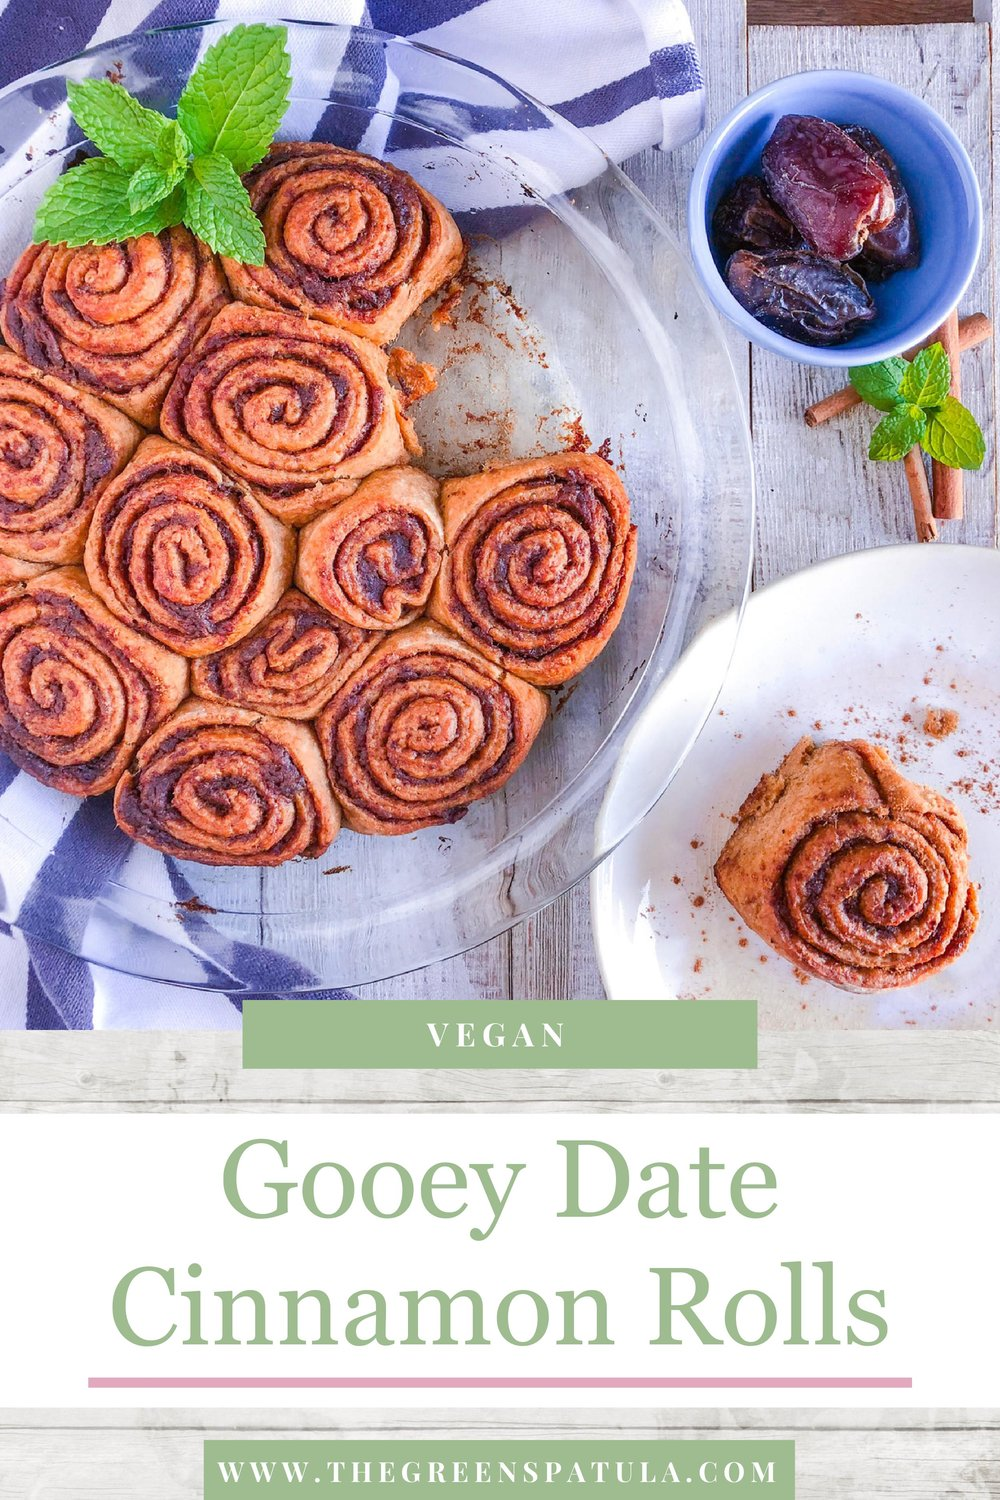 Gooey Date Cinnamon Rolls - A childhood classic with a twist! Using dates lowers the sugar levels without sacrificing flavor or satisfaction. Get ready to indulge without any guilt! Perfect for a Sunday brunch, weekday treat, or Christmas morning. Basically, these are good whenever the craving for some soft and delicious cinnamon rolls strikes! #healthybaking #vegan #plantbased #realfood #cleaneating #healthy #cinnamonrolls #brunch